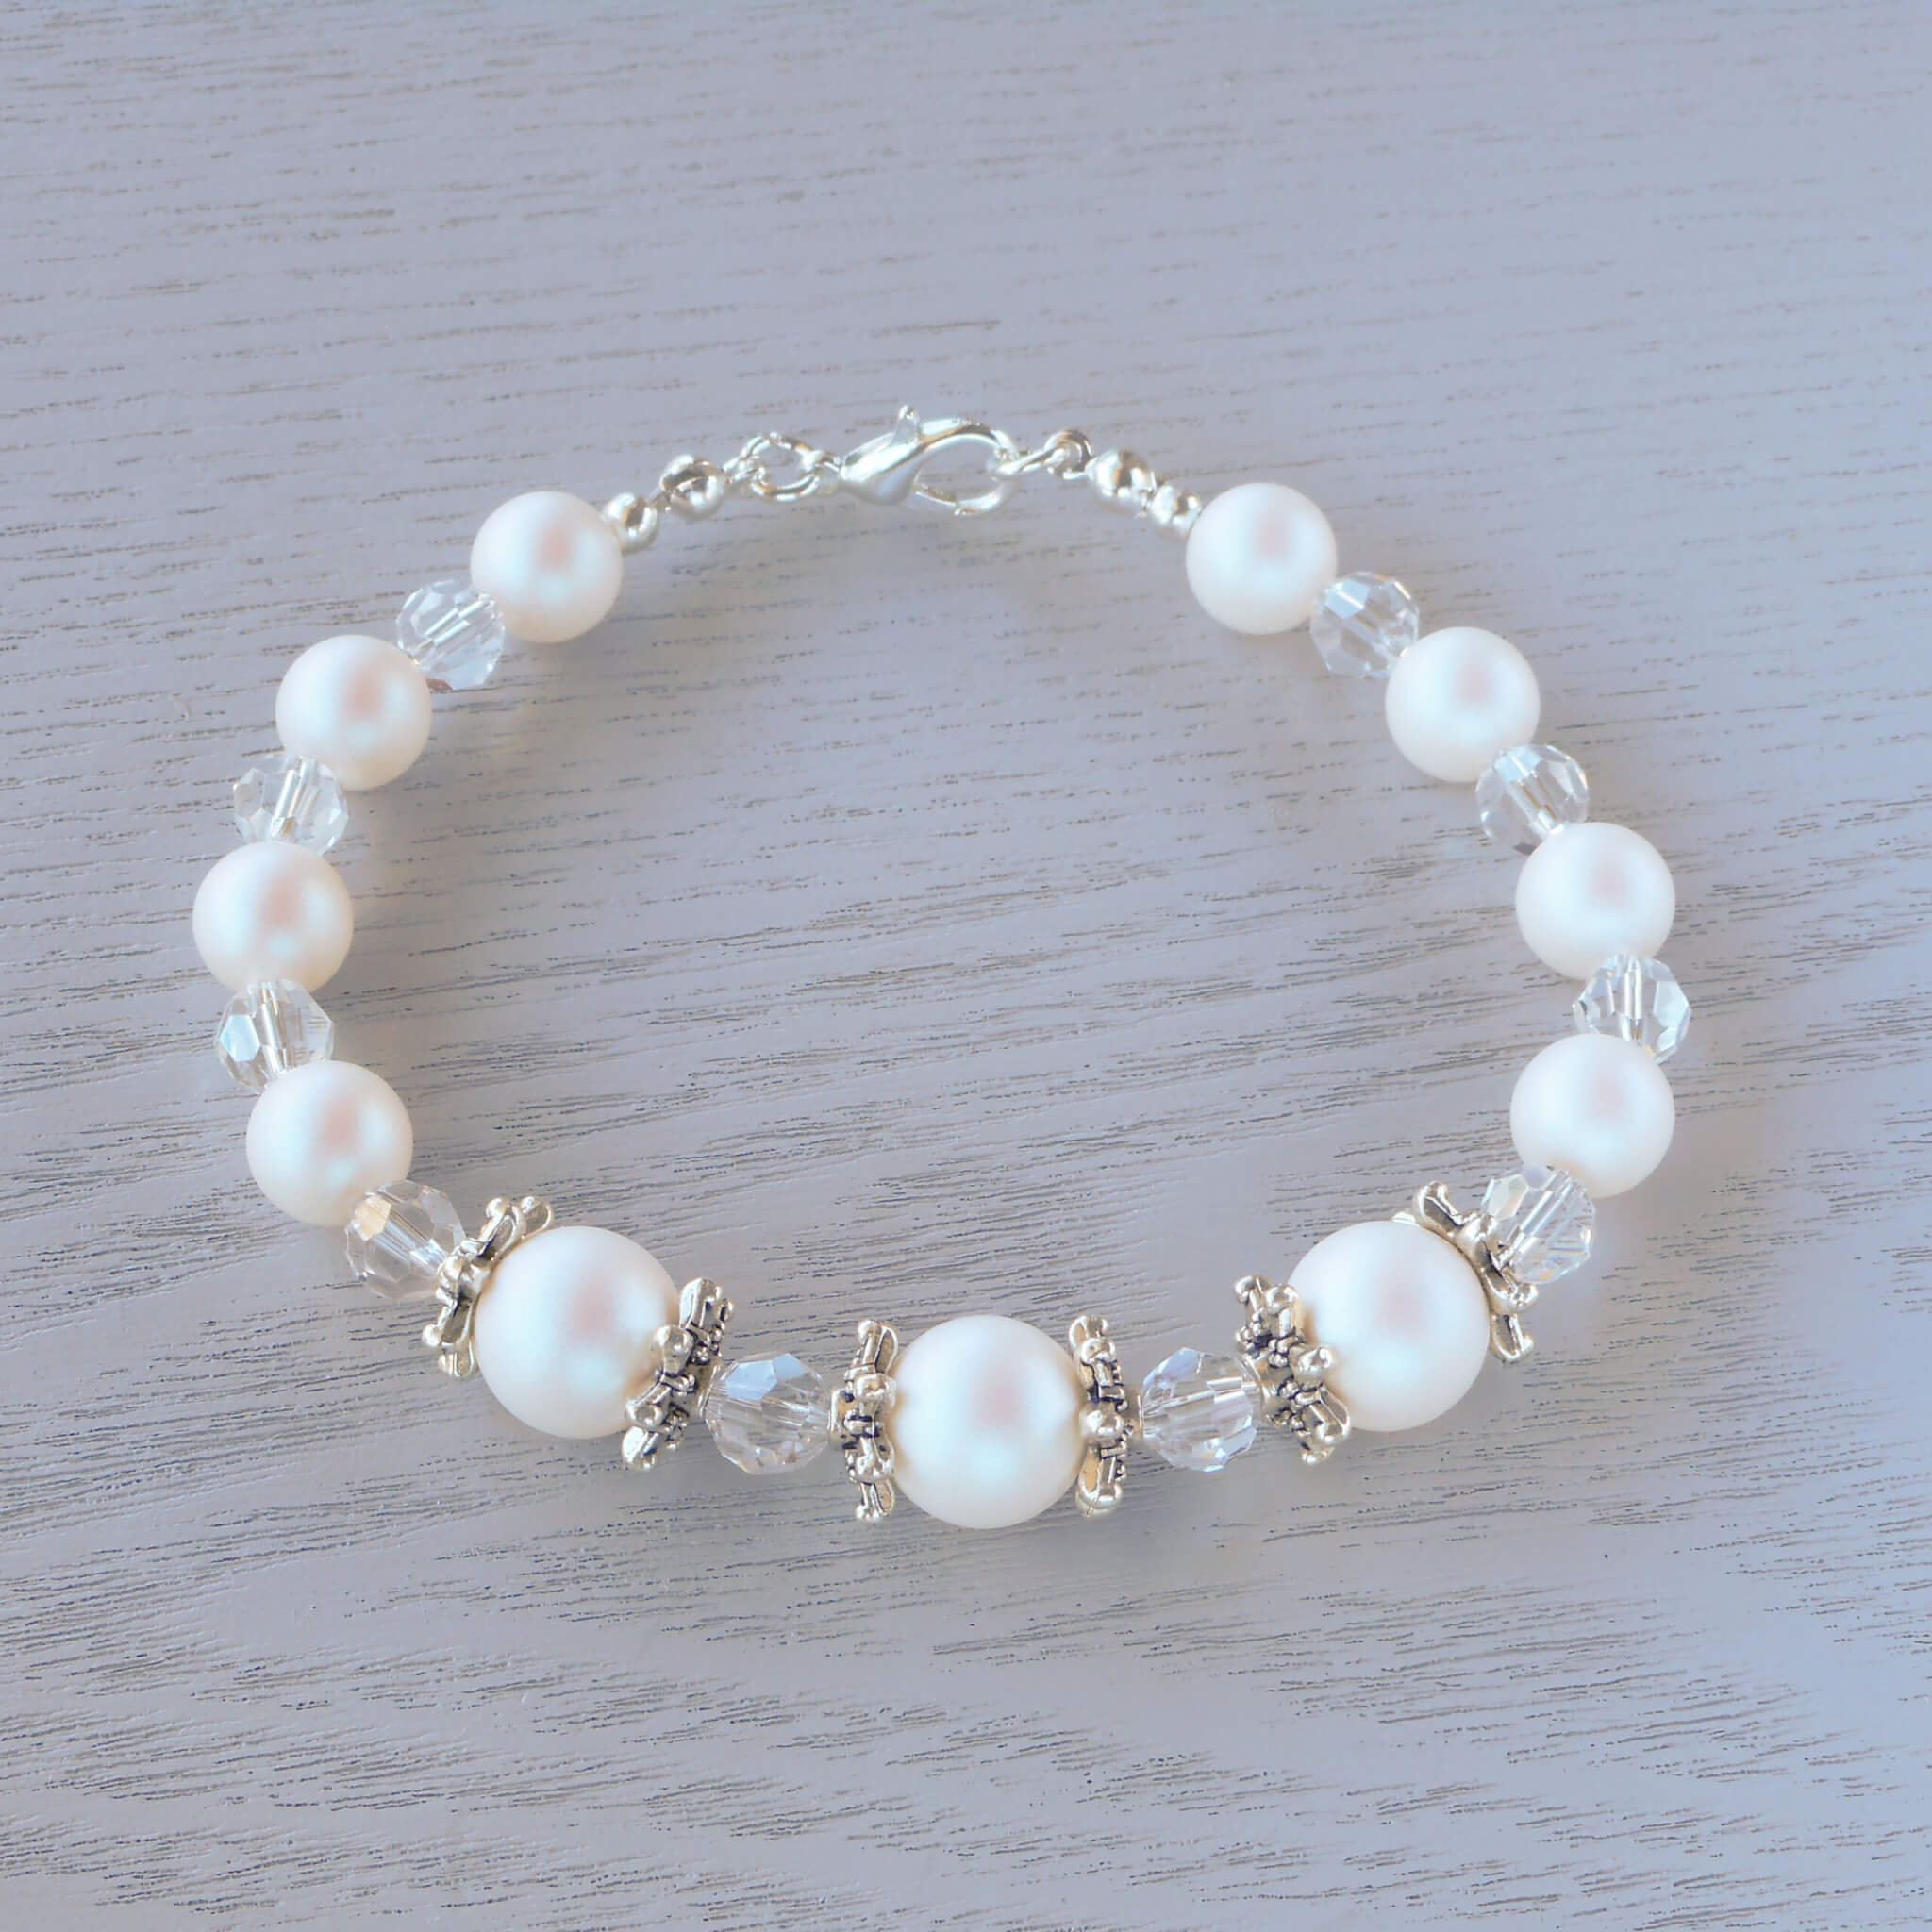 Emilia Glass Crystal & Snowflake Bracelet Ornate snowflake bead-caps separate the frosty Pearlescent White Swarovski pearls and round faceted